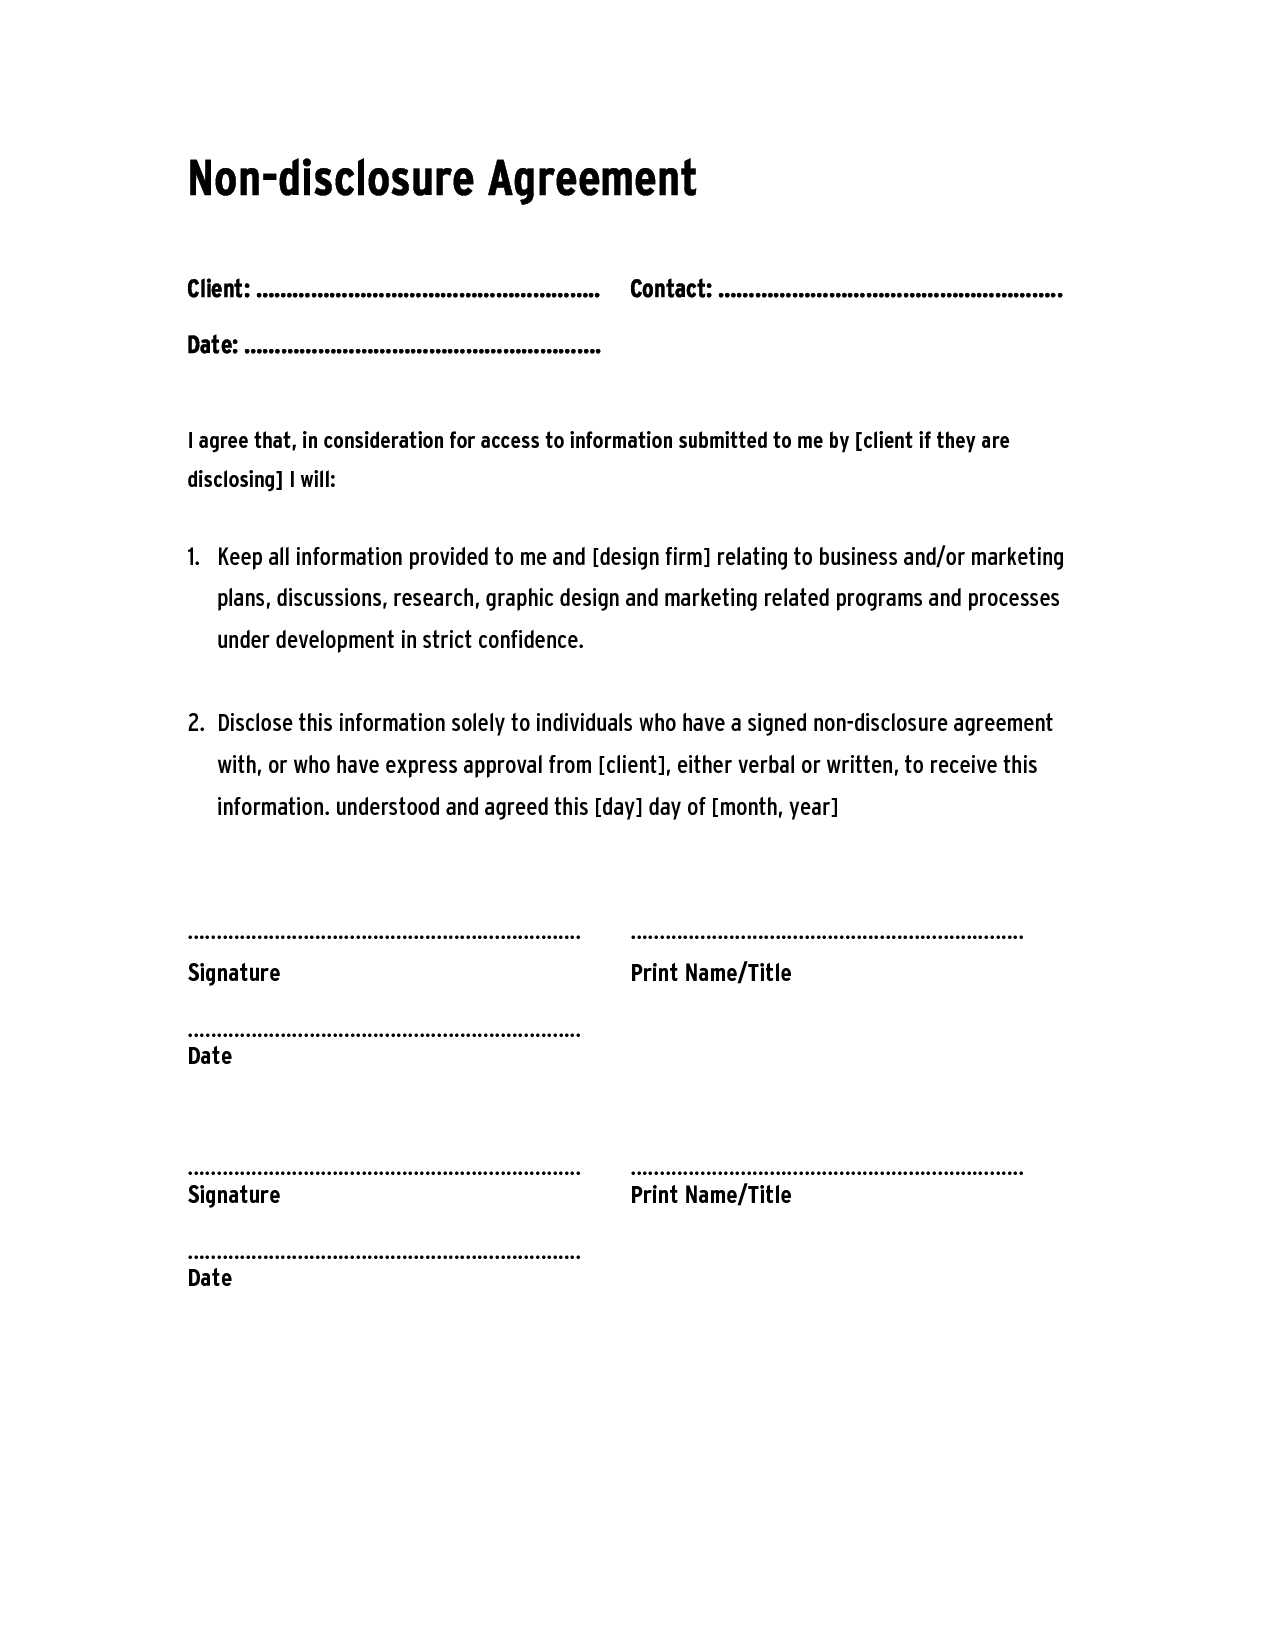 Non Disclosure Agreement Template Confidentiality Agreement Template Undercoverrules Usigned4my Protectio Non Disclosure Agreement Agreement Word Template